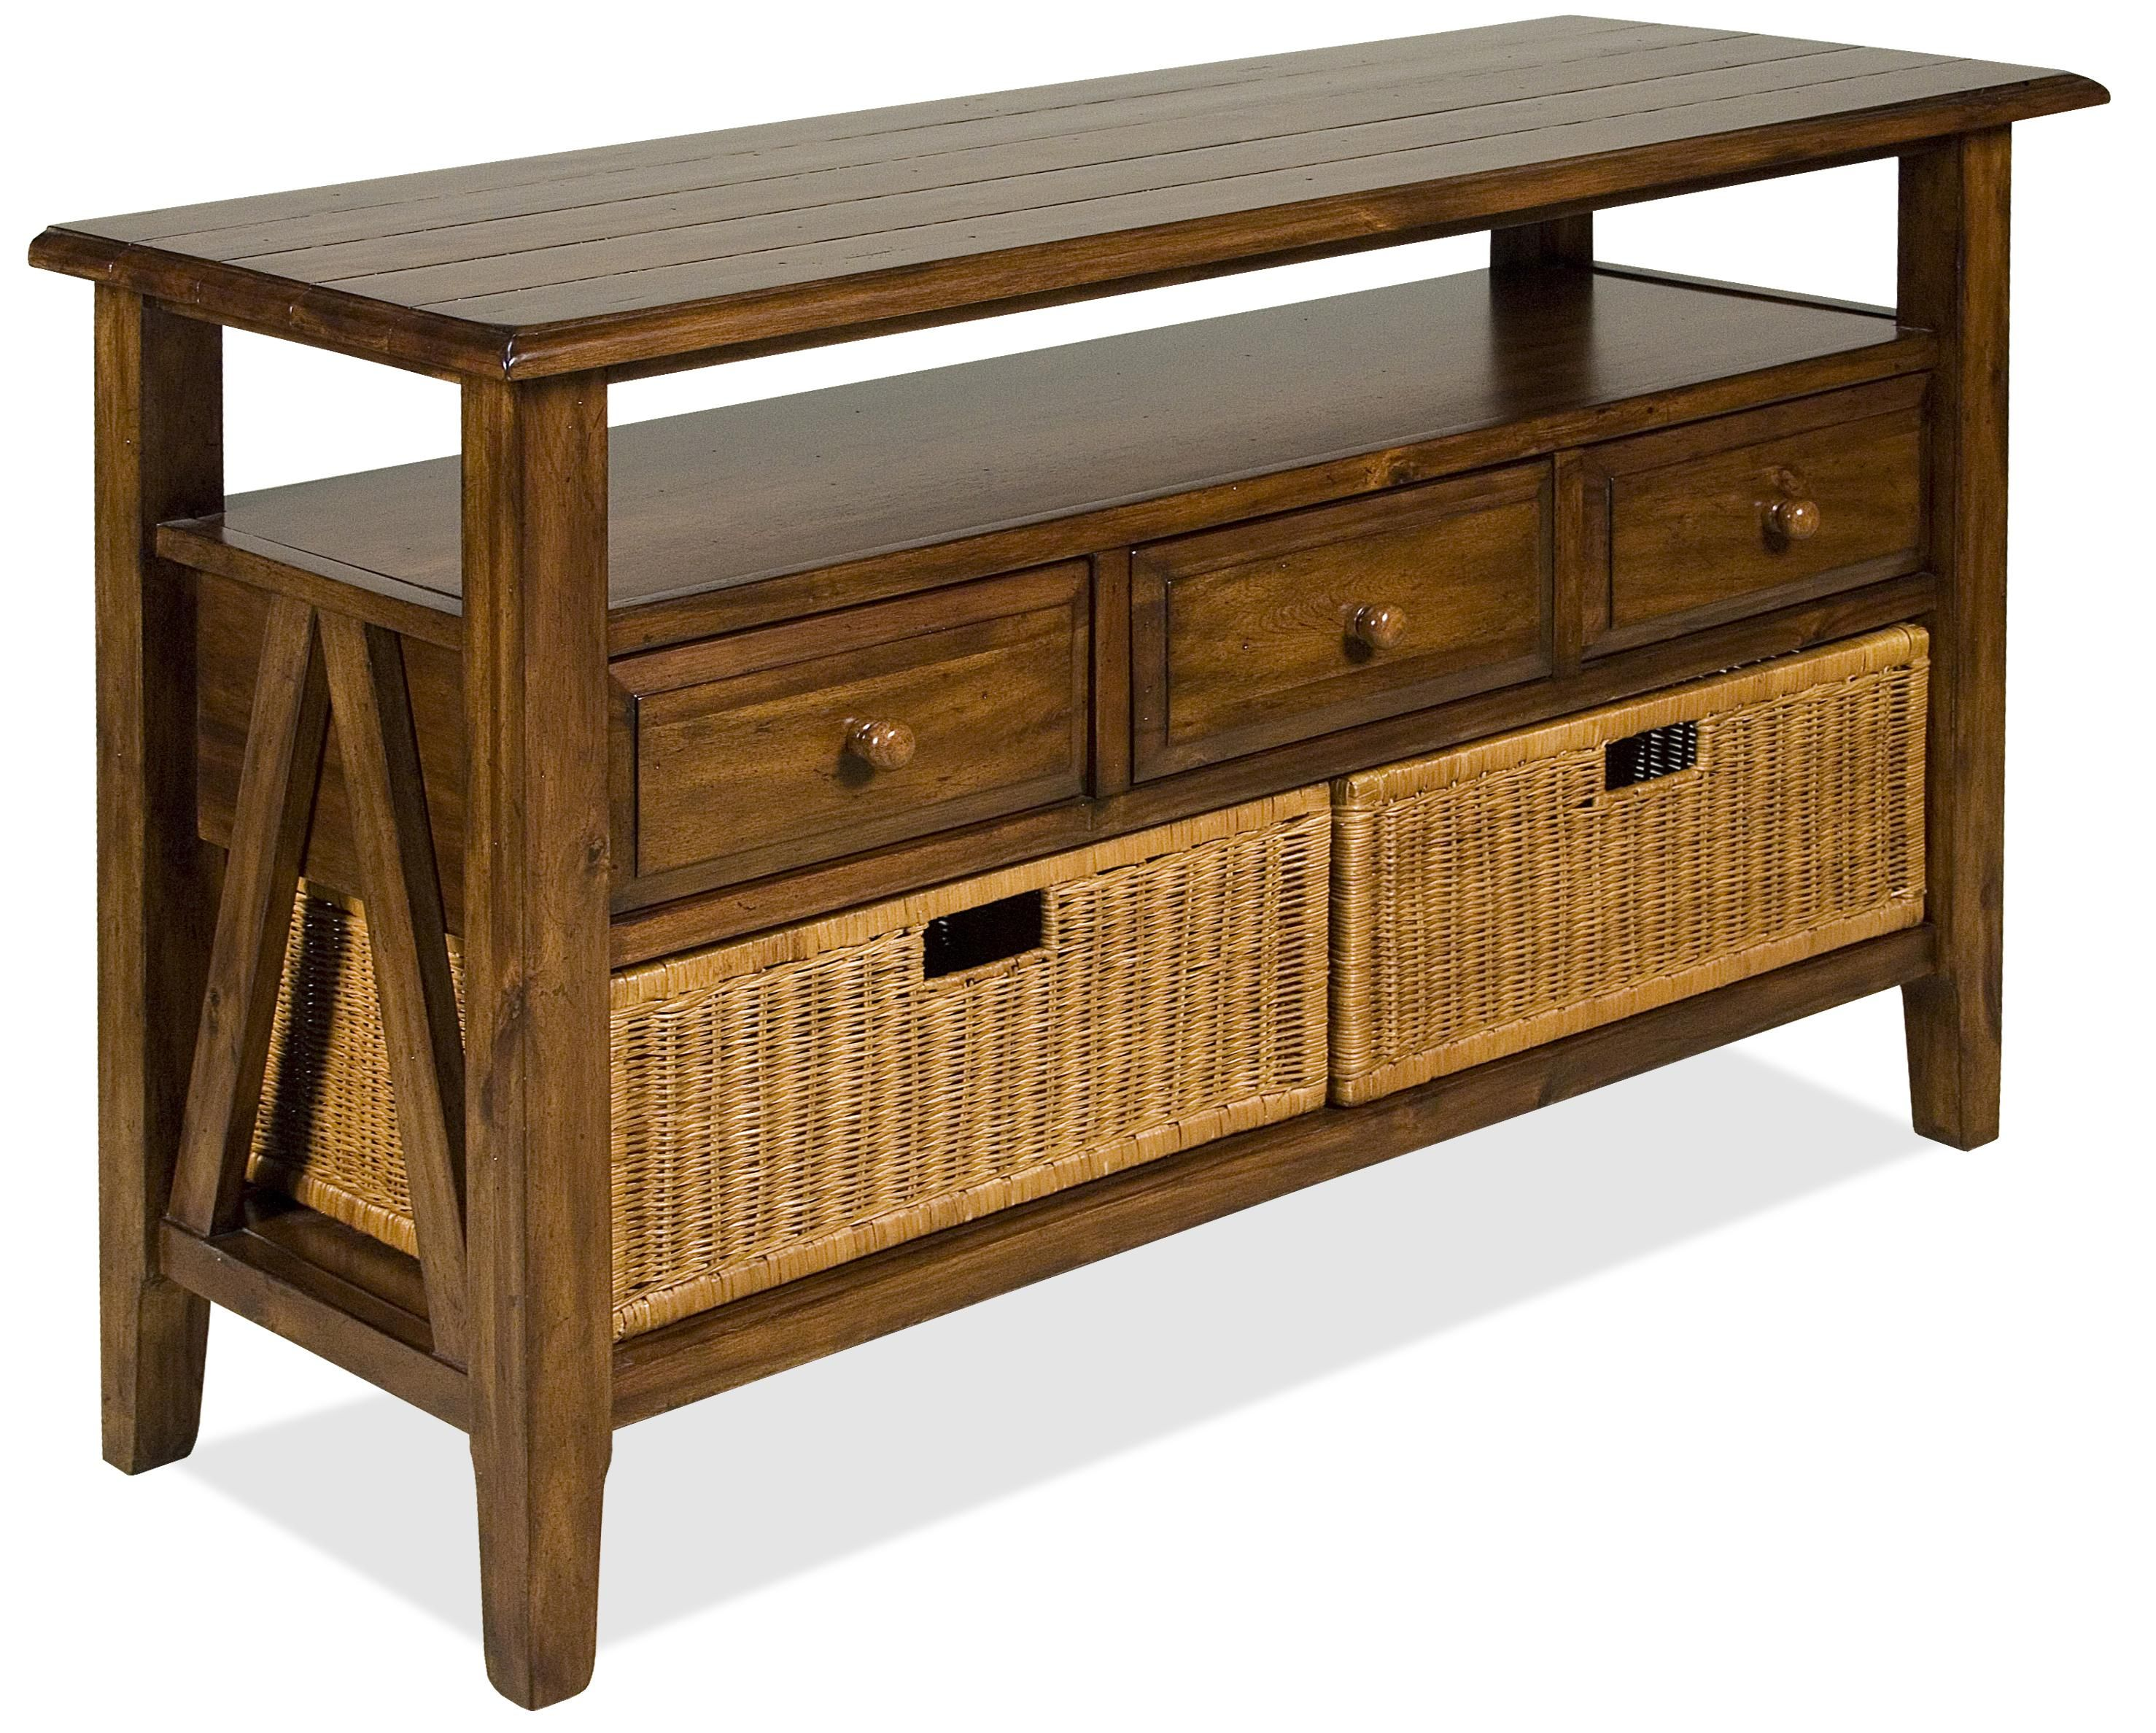 sofa table storage ligne roset bed sale riverside furniture claremont 3 drawer console with